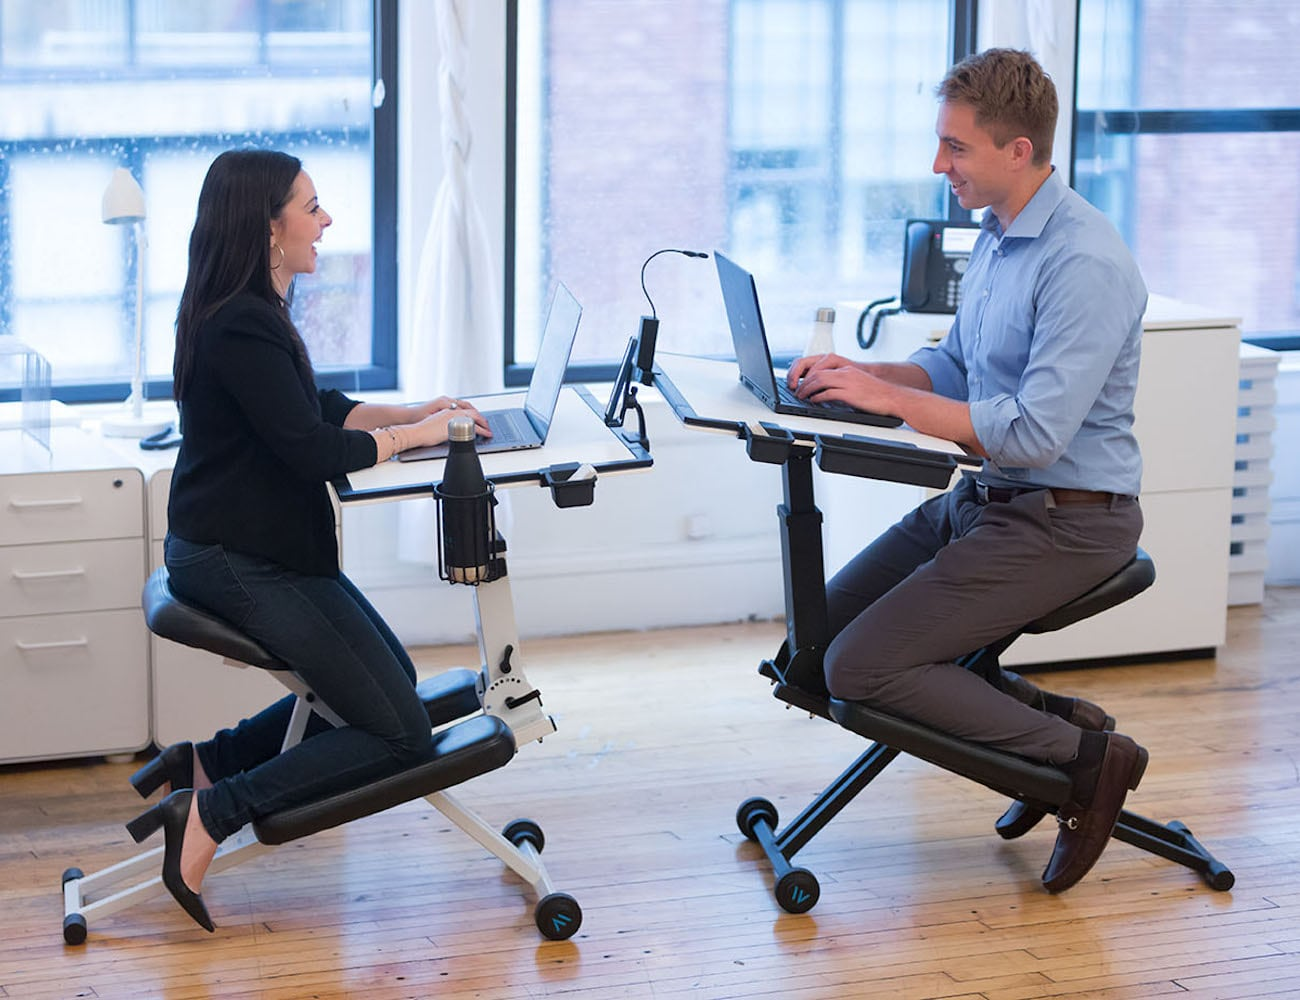 The Edge Desk 2.0 Adjustable Ergonomic Desk